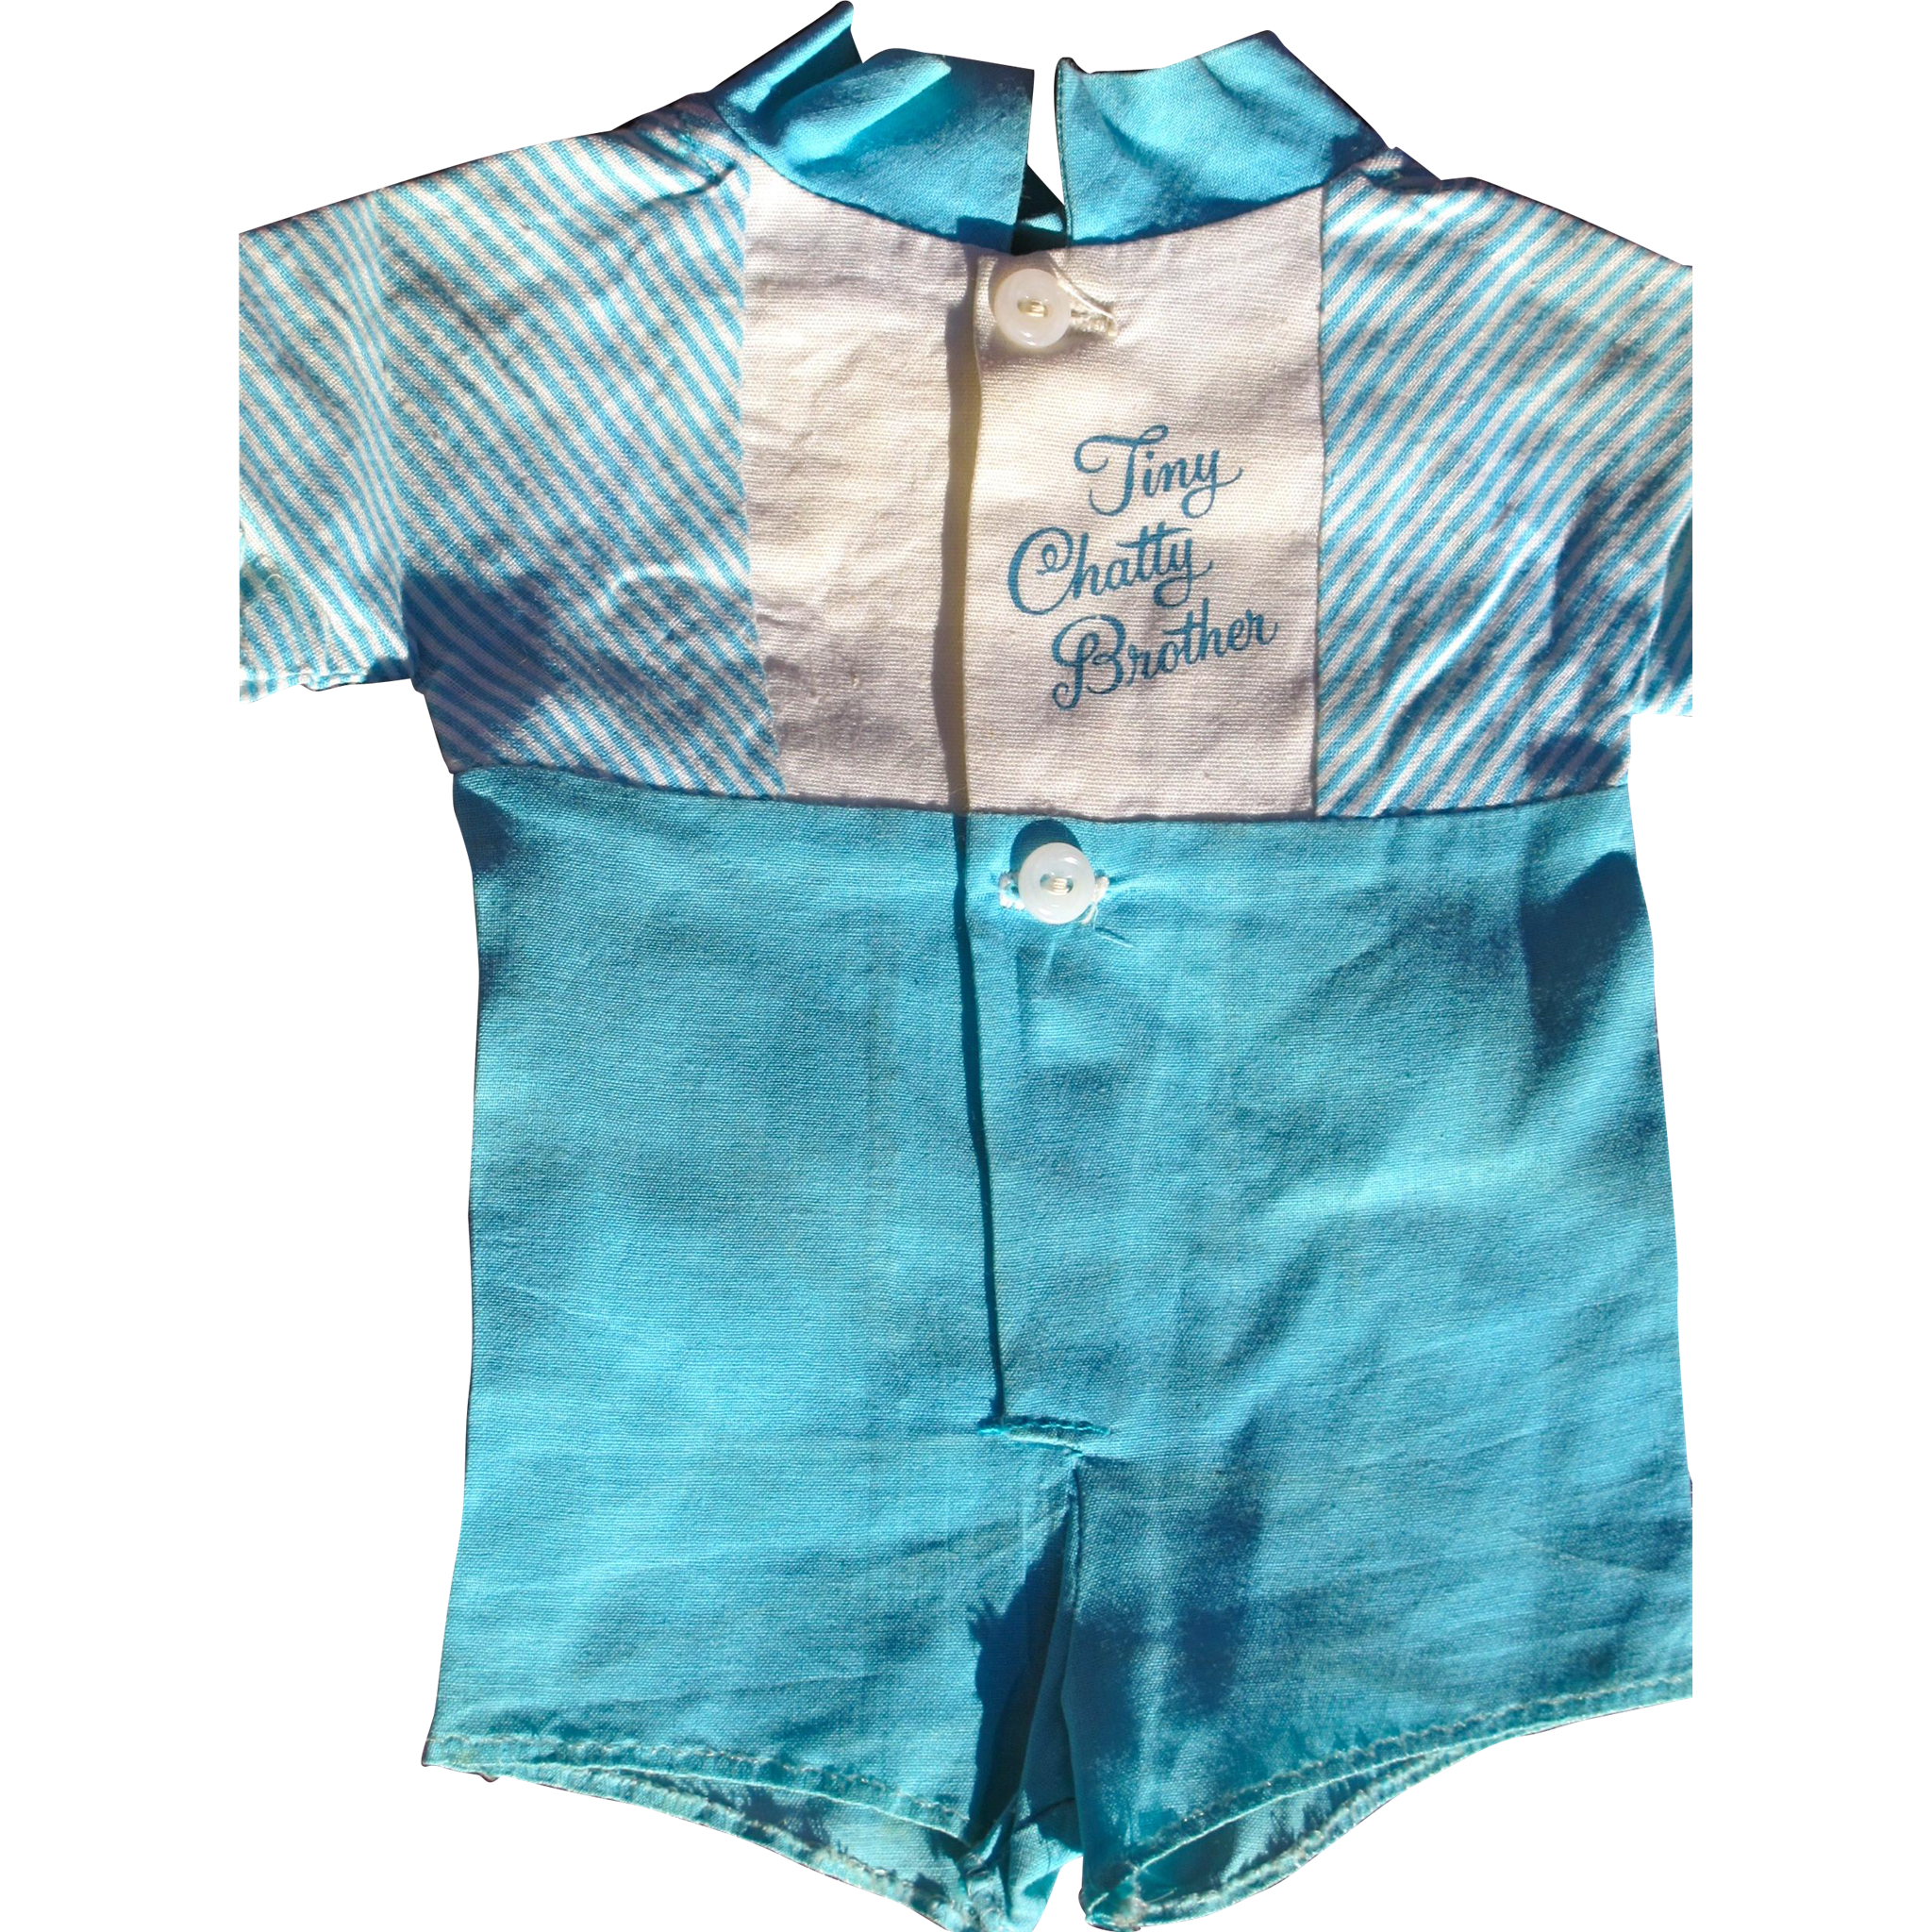 Doll Tiny Chatty Cathy Brother Outfit